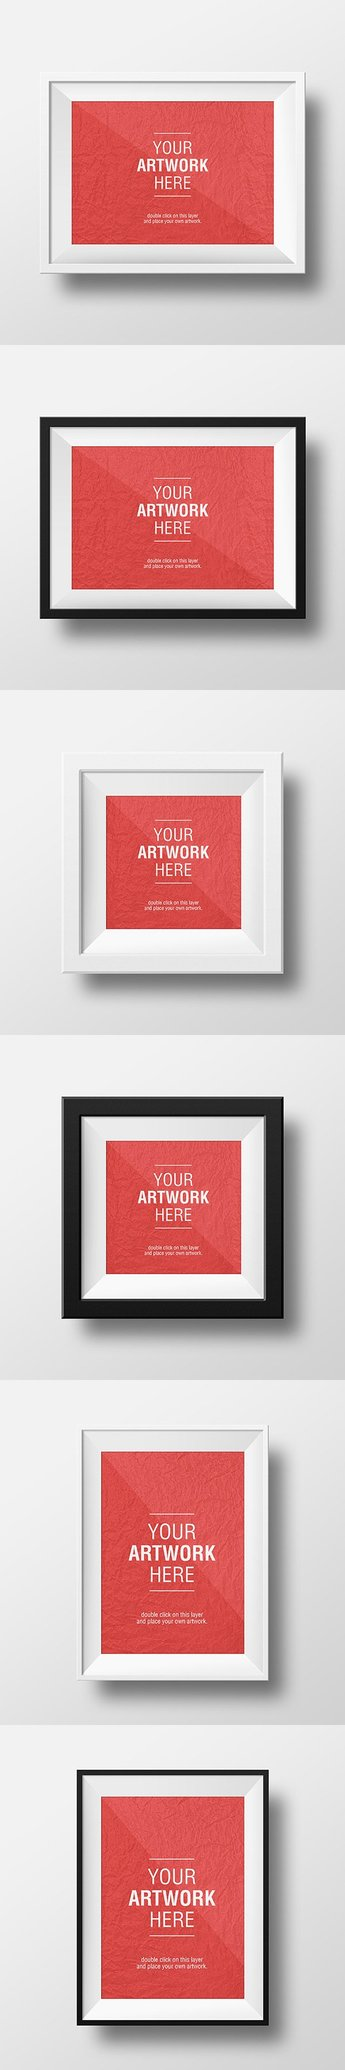 Artwork Frame PSD MockUps